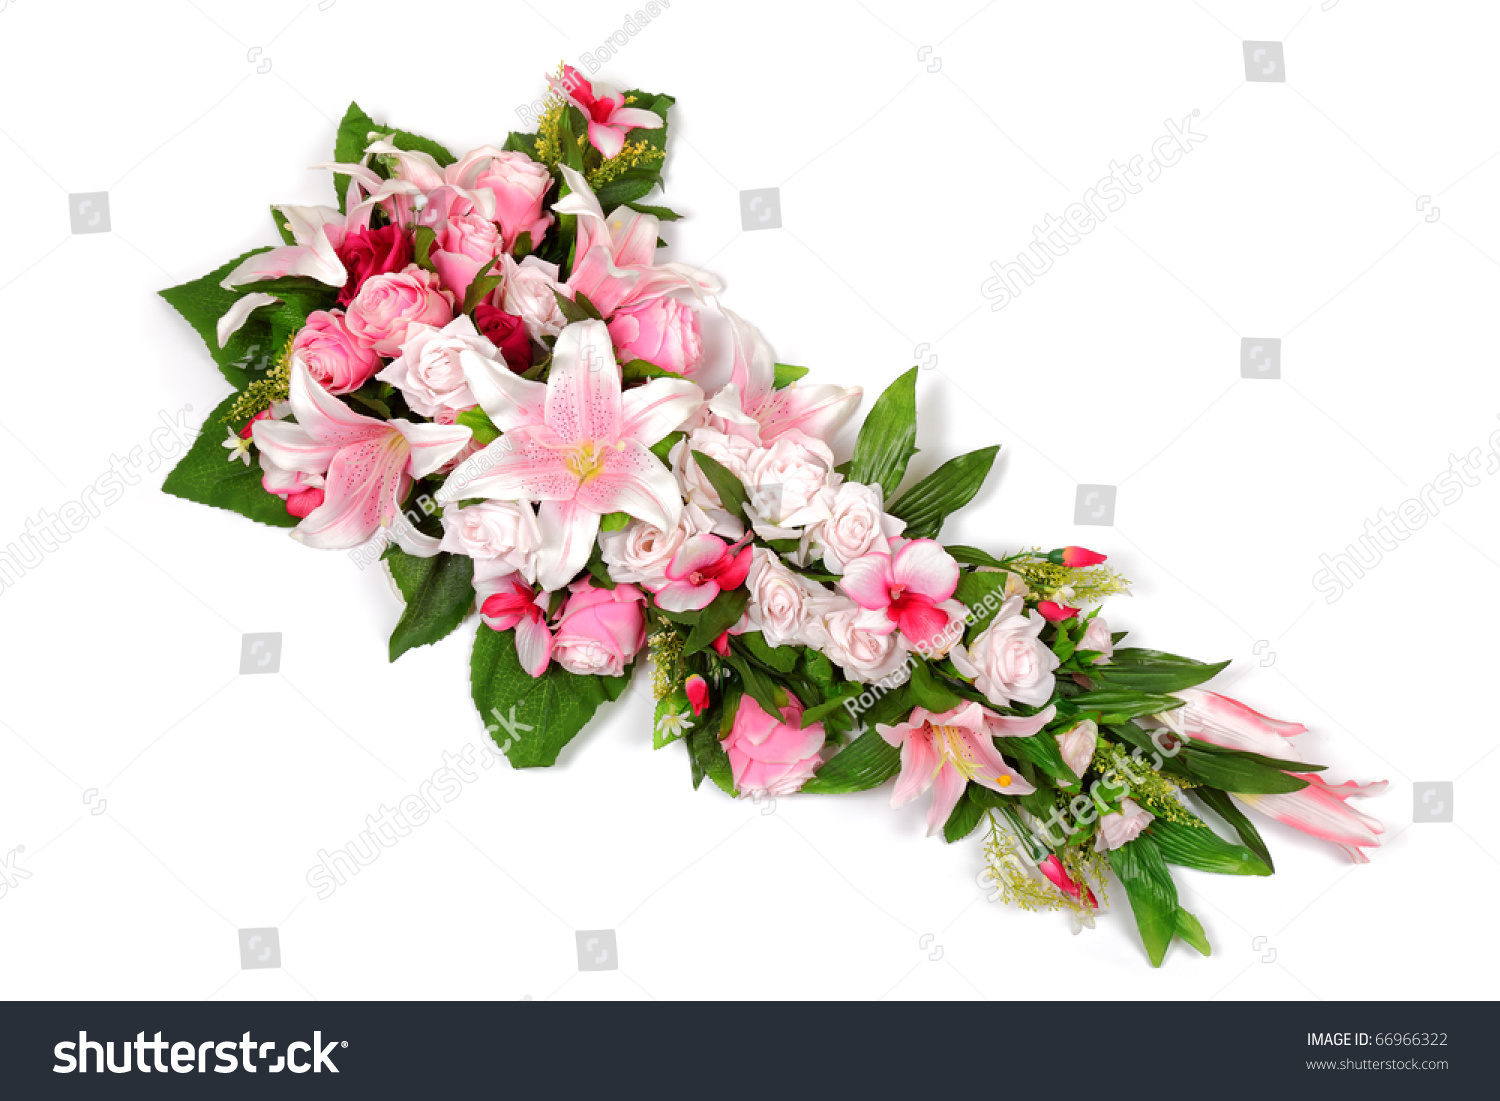 Wedding flower bouquet composition roses lilies stock photo edit wedding flower bouquet composition with roses lilies and orchids isolated on white background izmirmasajfo